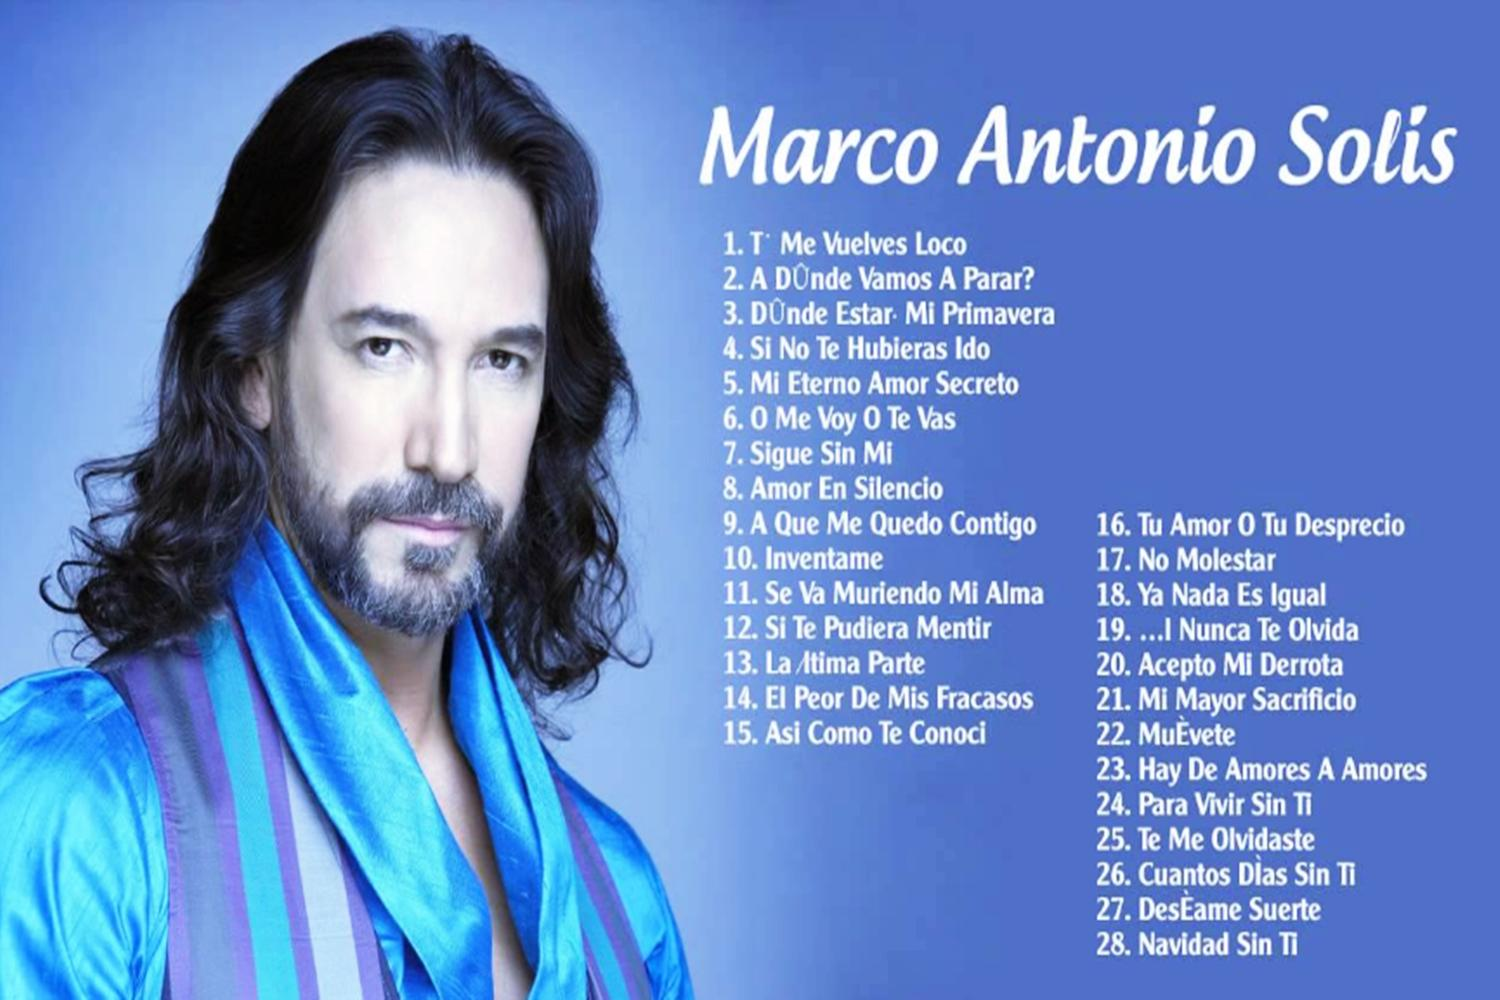 Musica Marco Antonio Solis Canciones For Android Apk Download